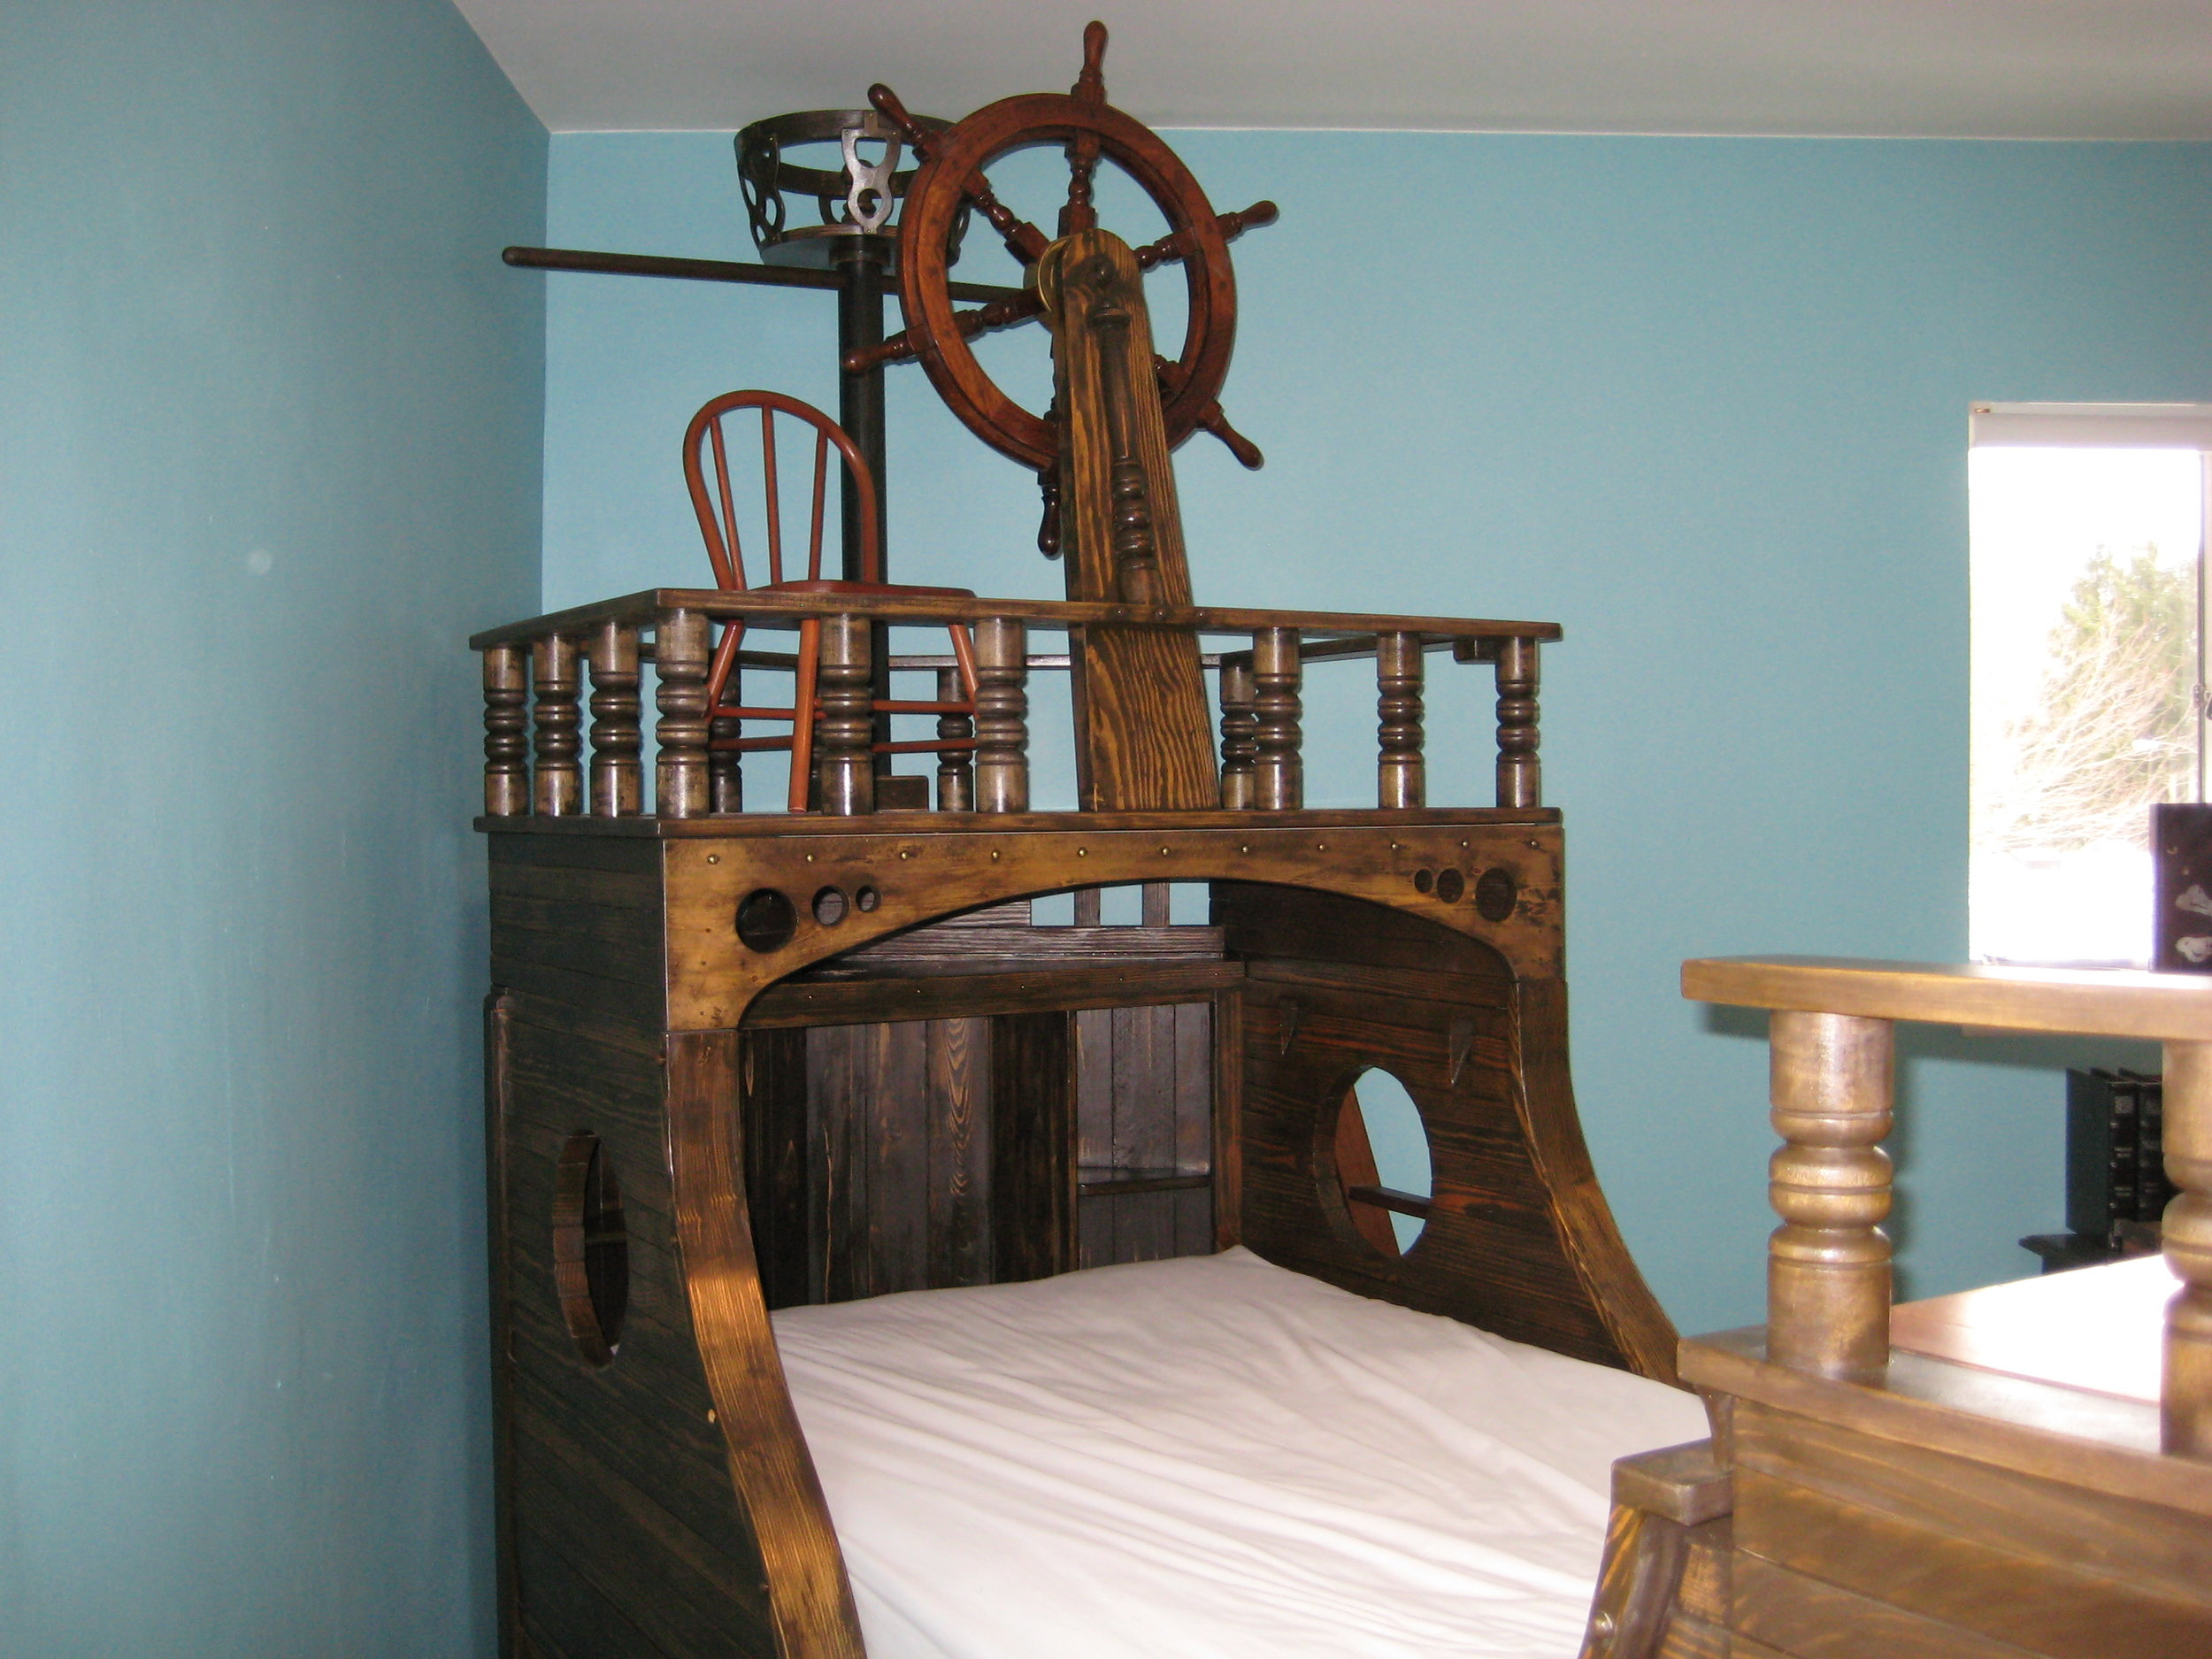 A pirate ship theme child's bed.